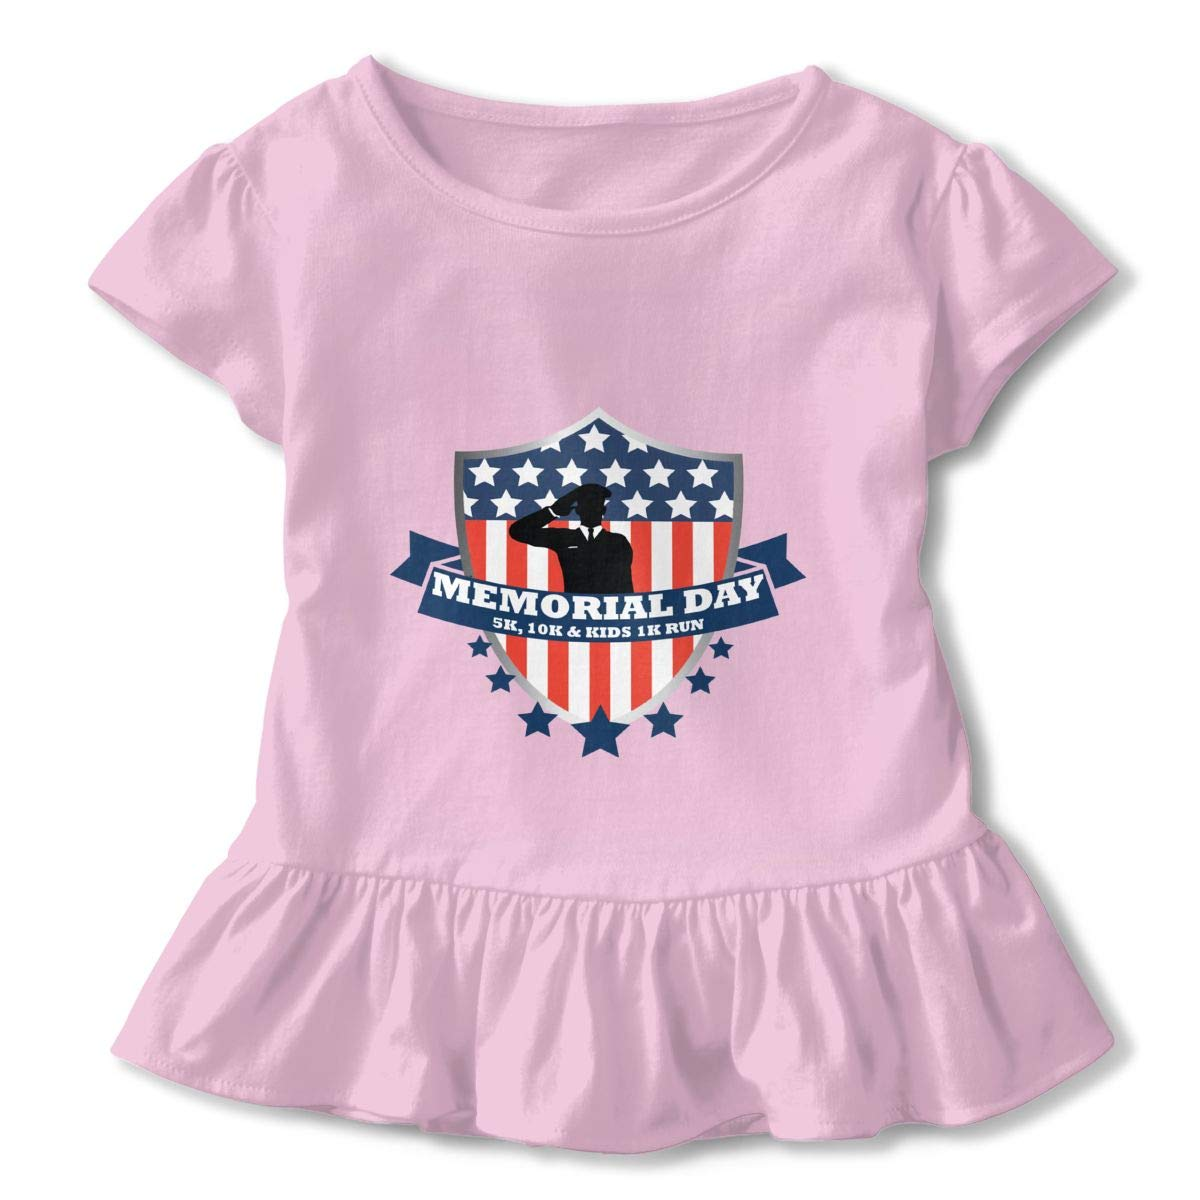 Memorial Day Pink 2-6 T Toddler Baby Girls 100/% Cotton Short Sleeve T Shirt Top Blouse Tee Clothes